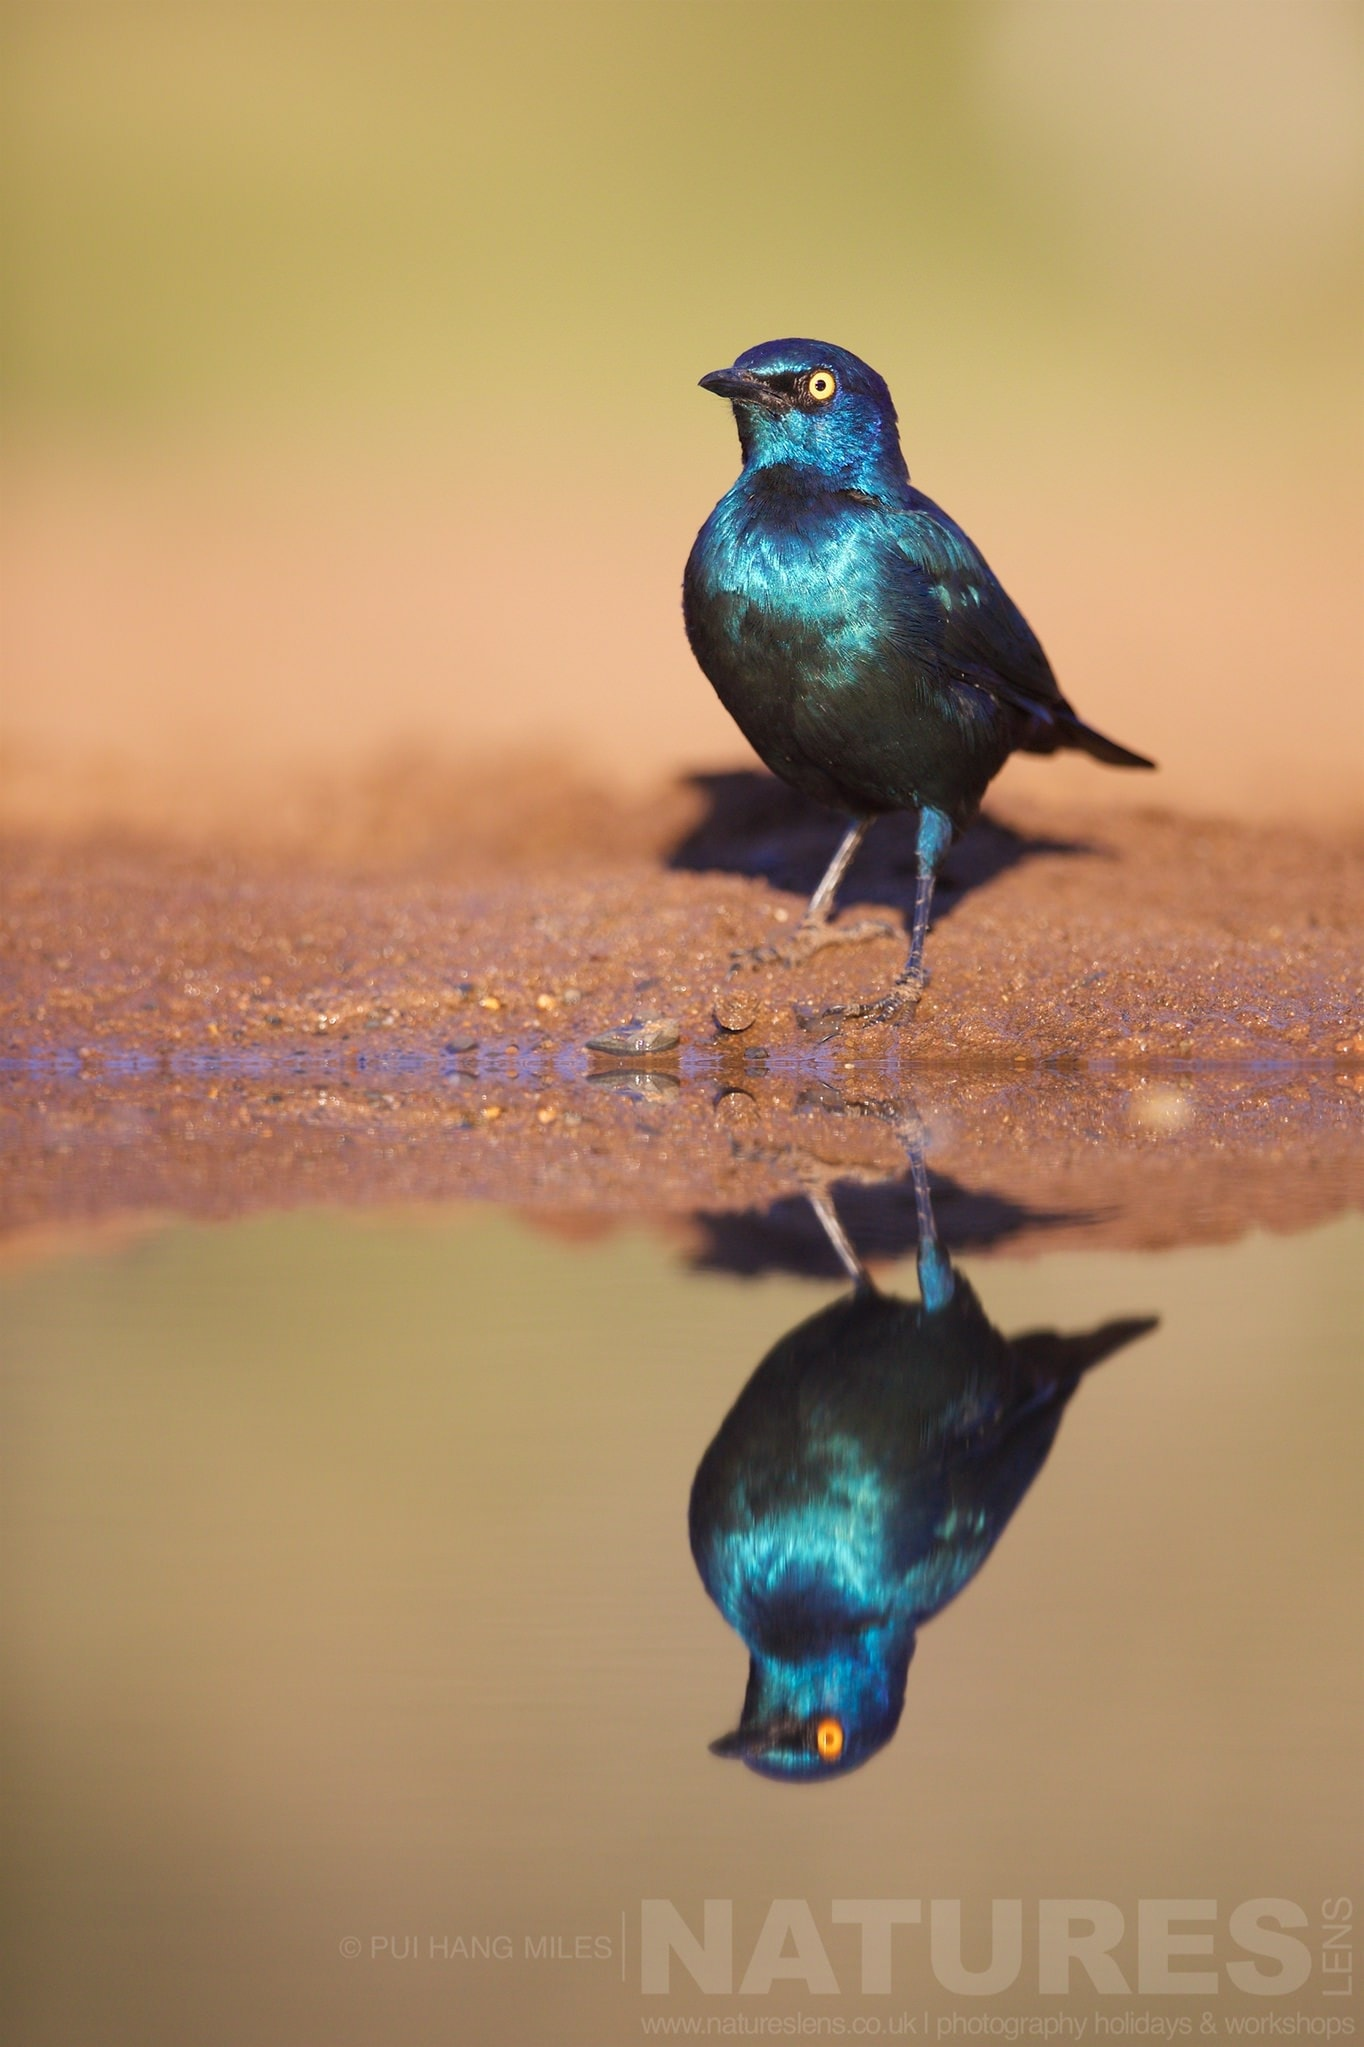 Cape Glossy Starling Reflection   Captured During The Natureslens African Wildlife Zimanga Photography Holiday